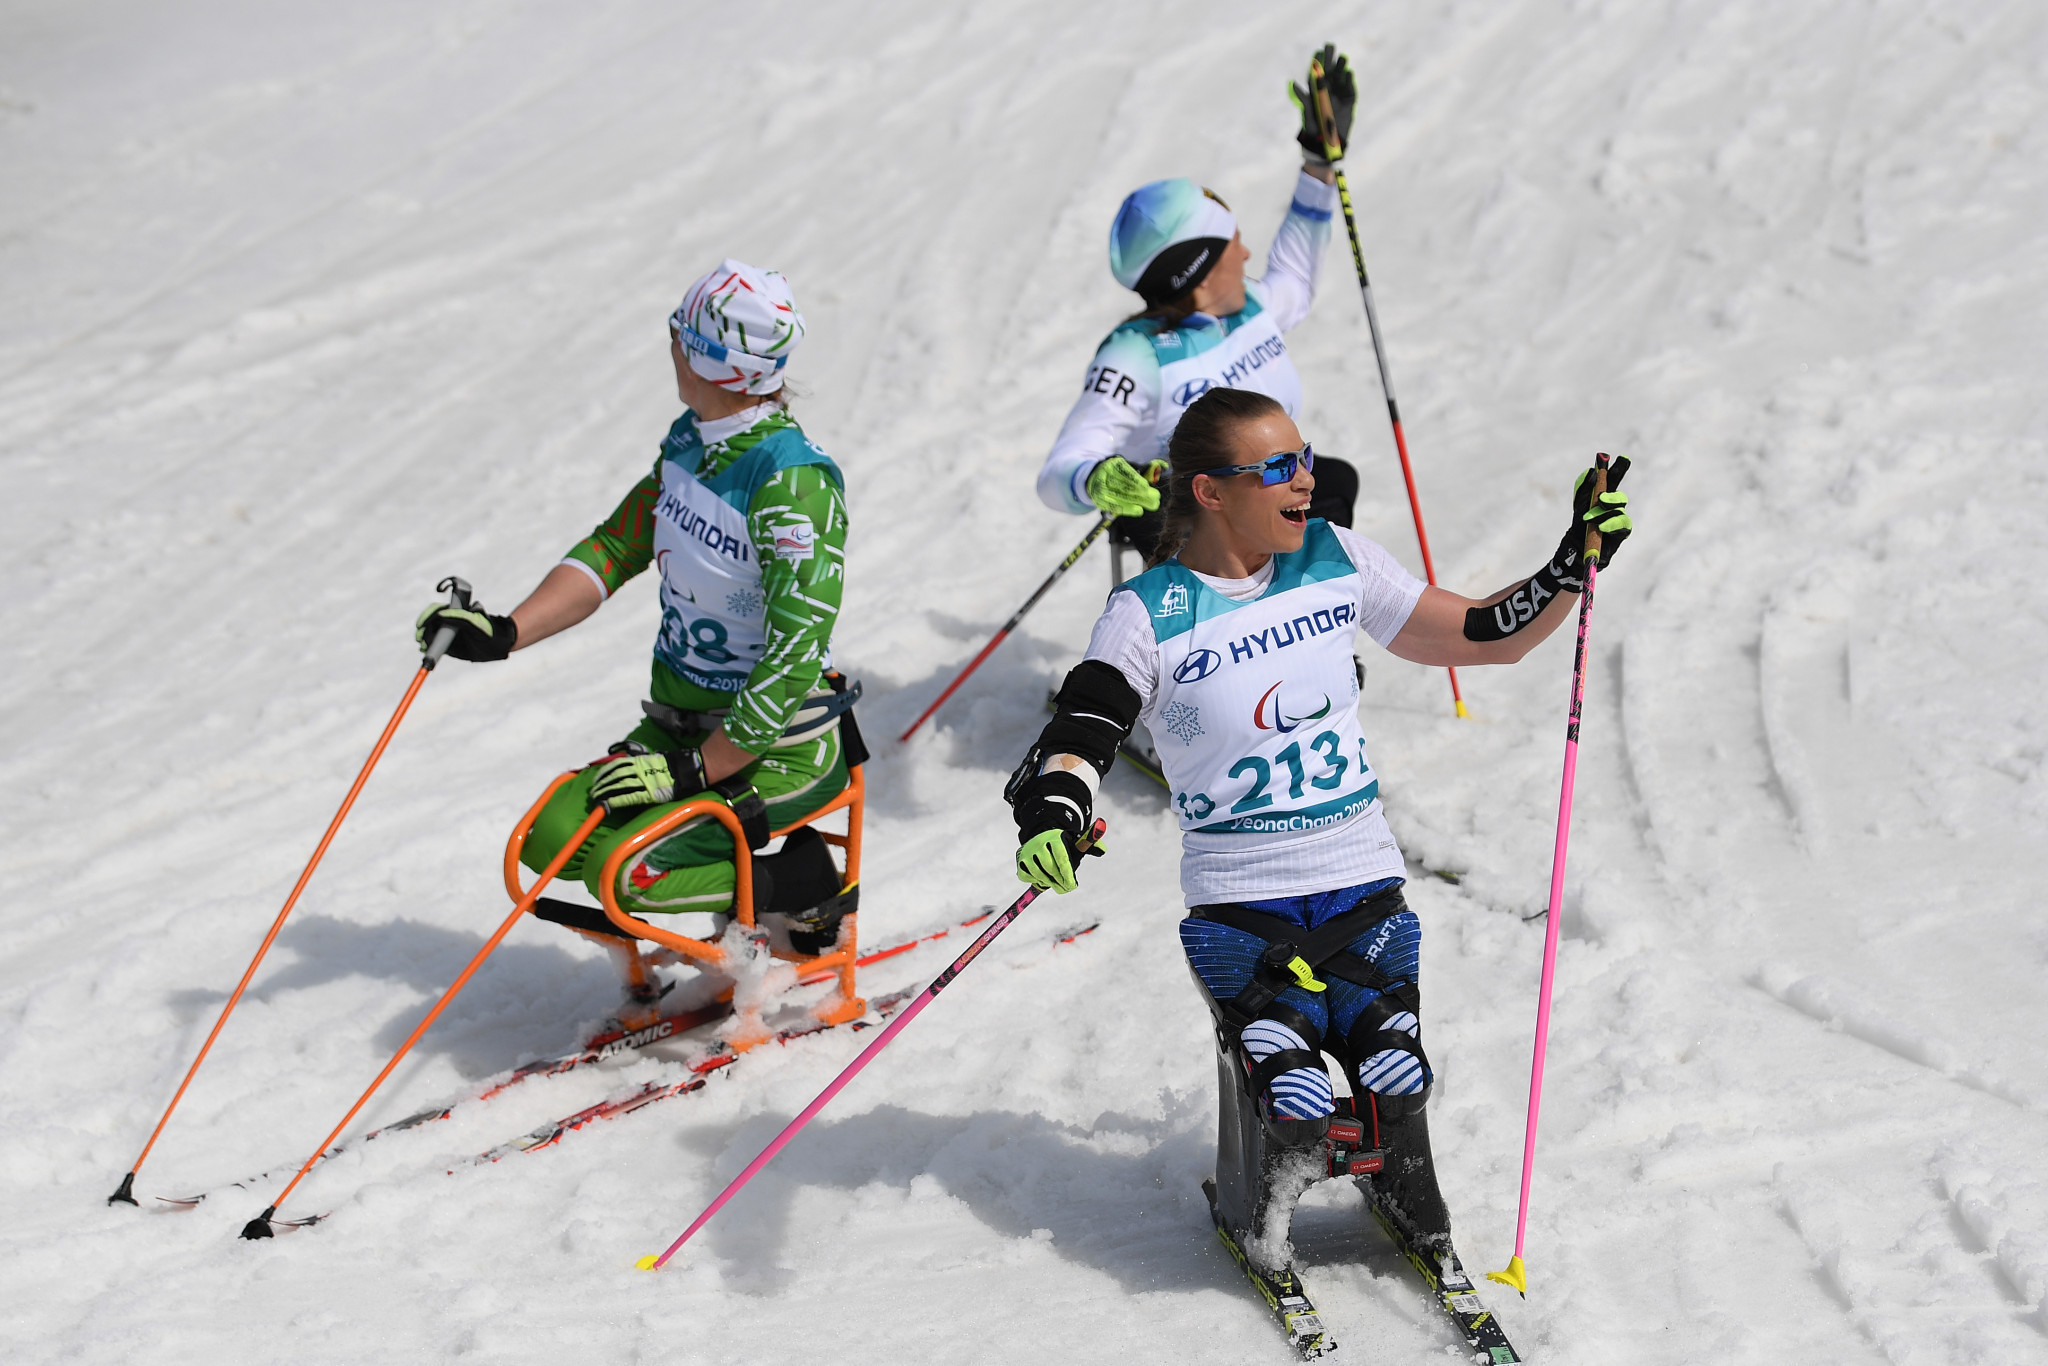 World Para Snow Sports Championships rescheduled for January 2022